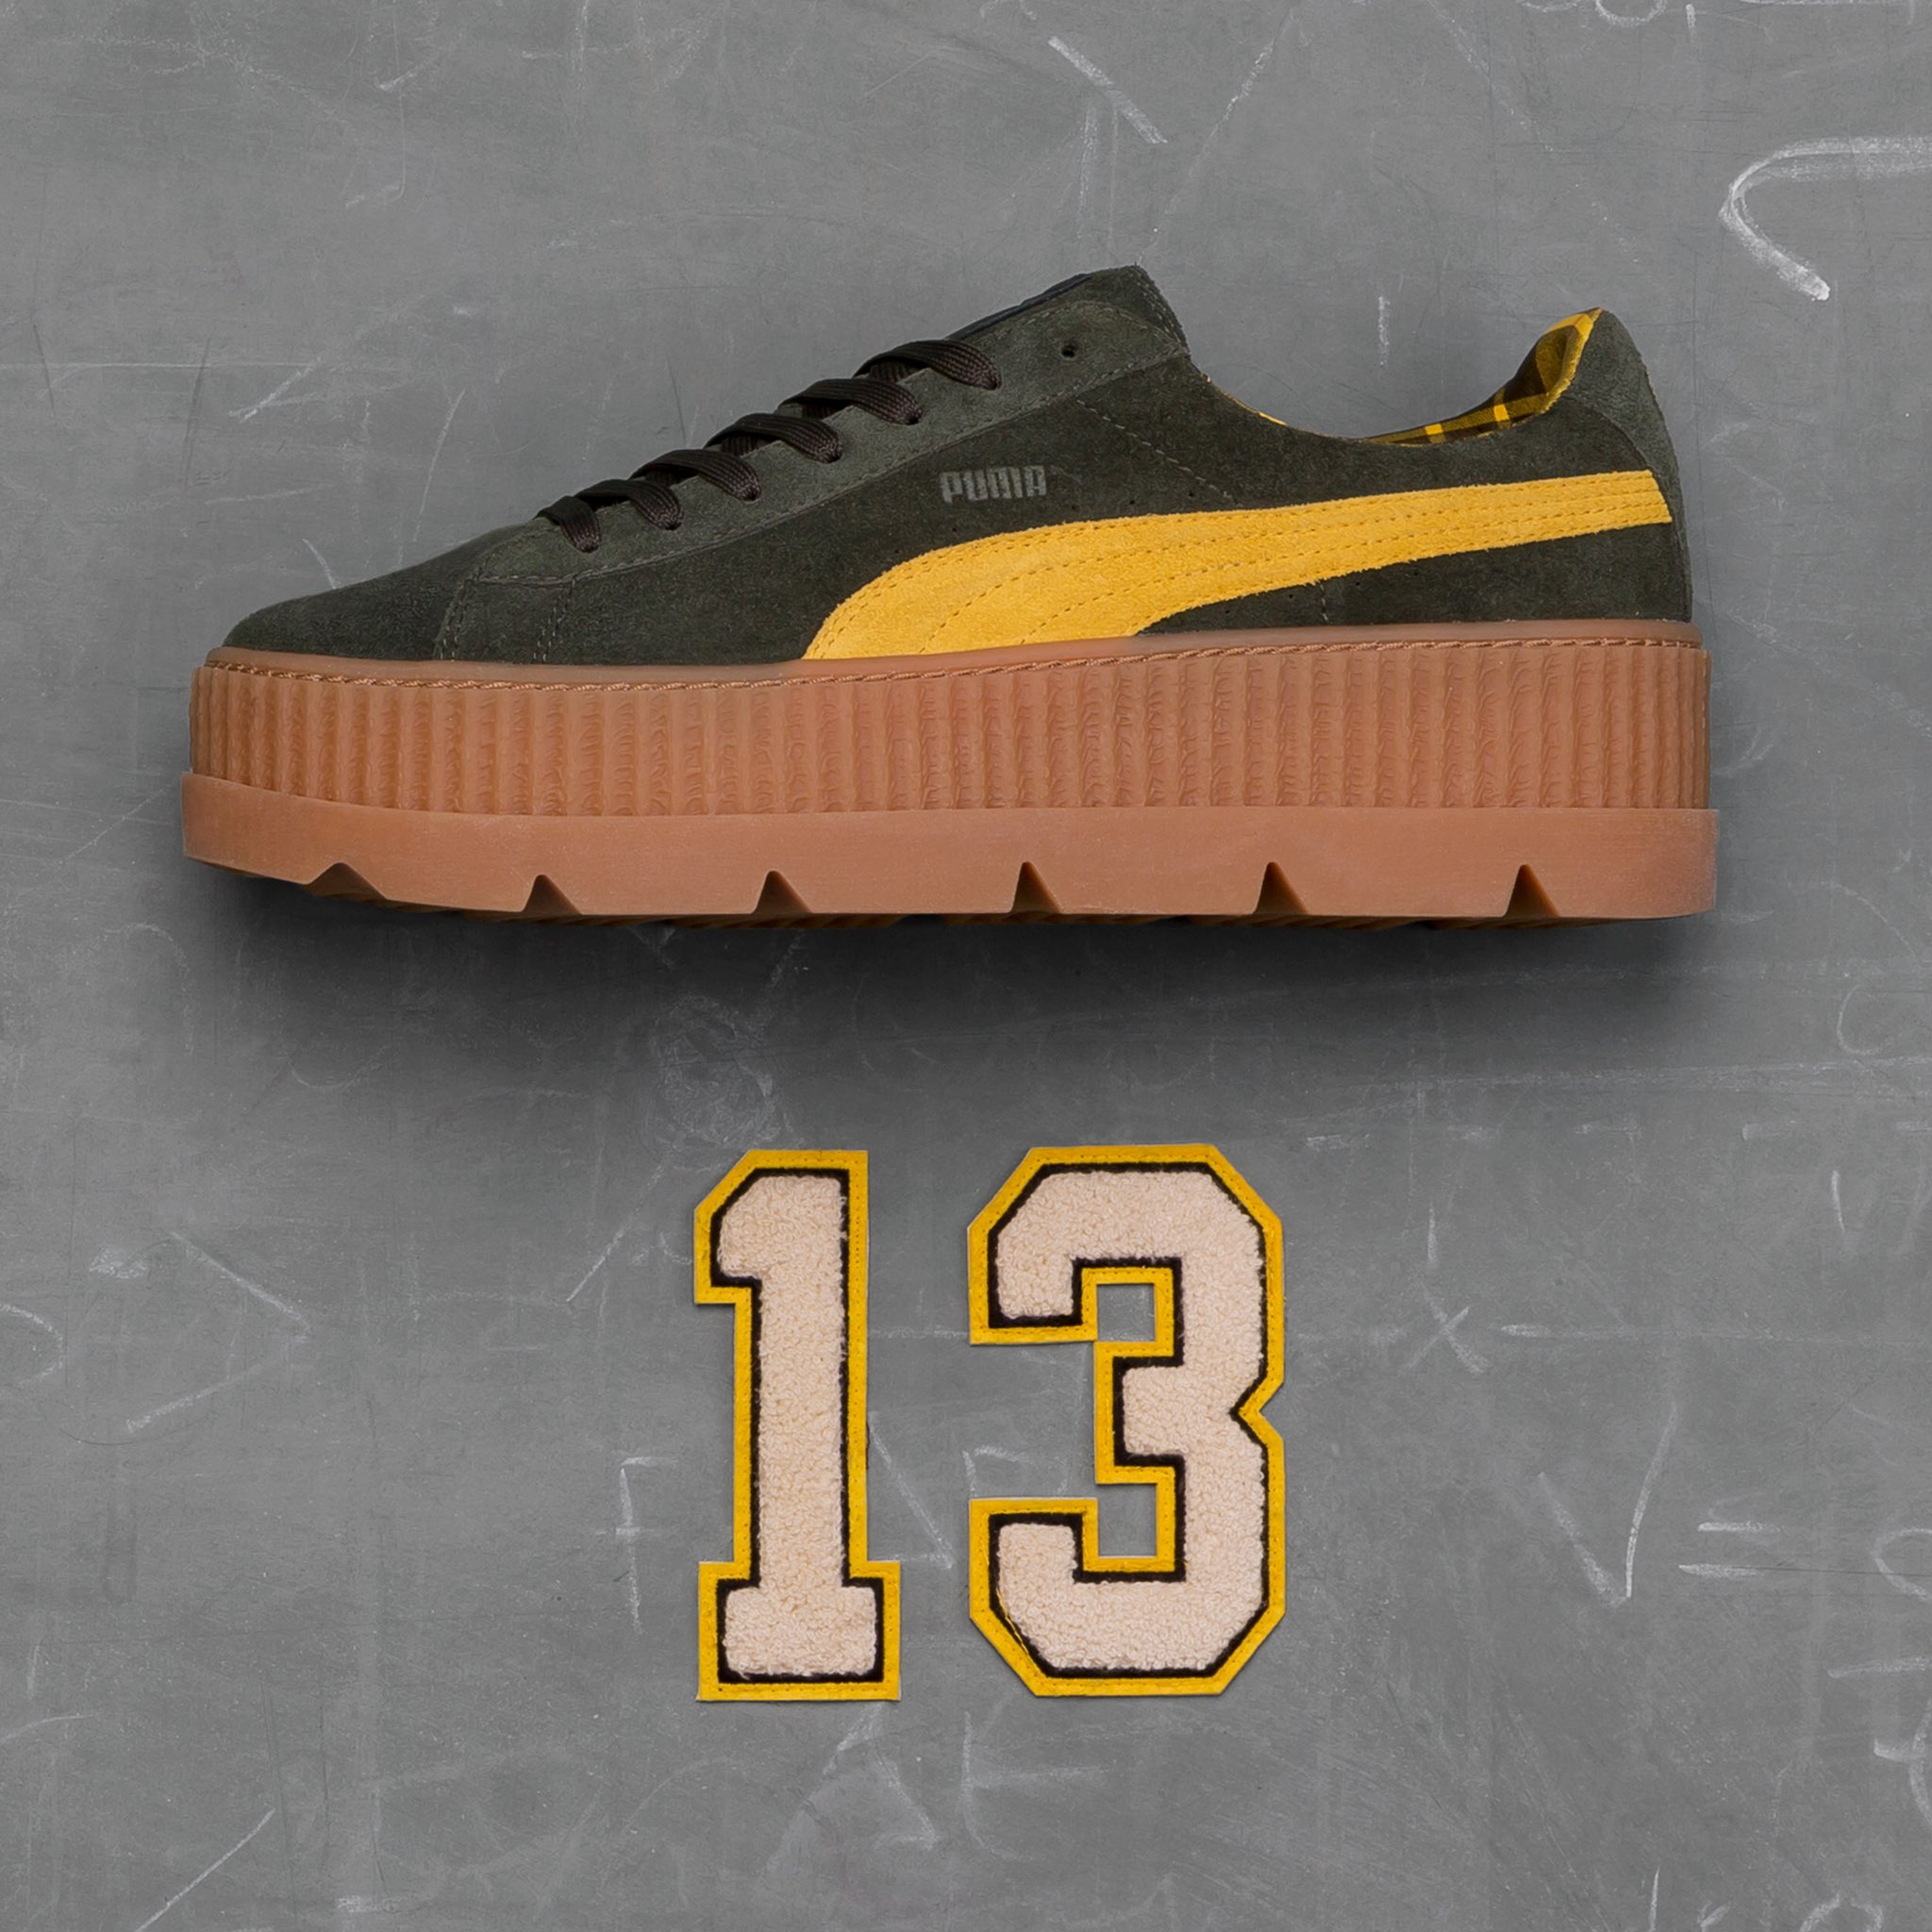 7590679f366c New Fenty Puma Cleated Creepers In 2 New Colorways + More Out Now ...